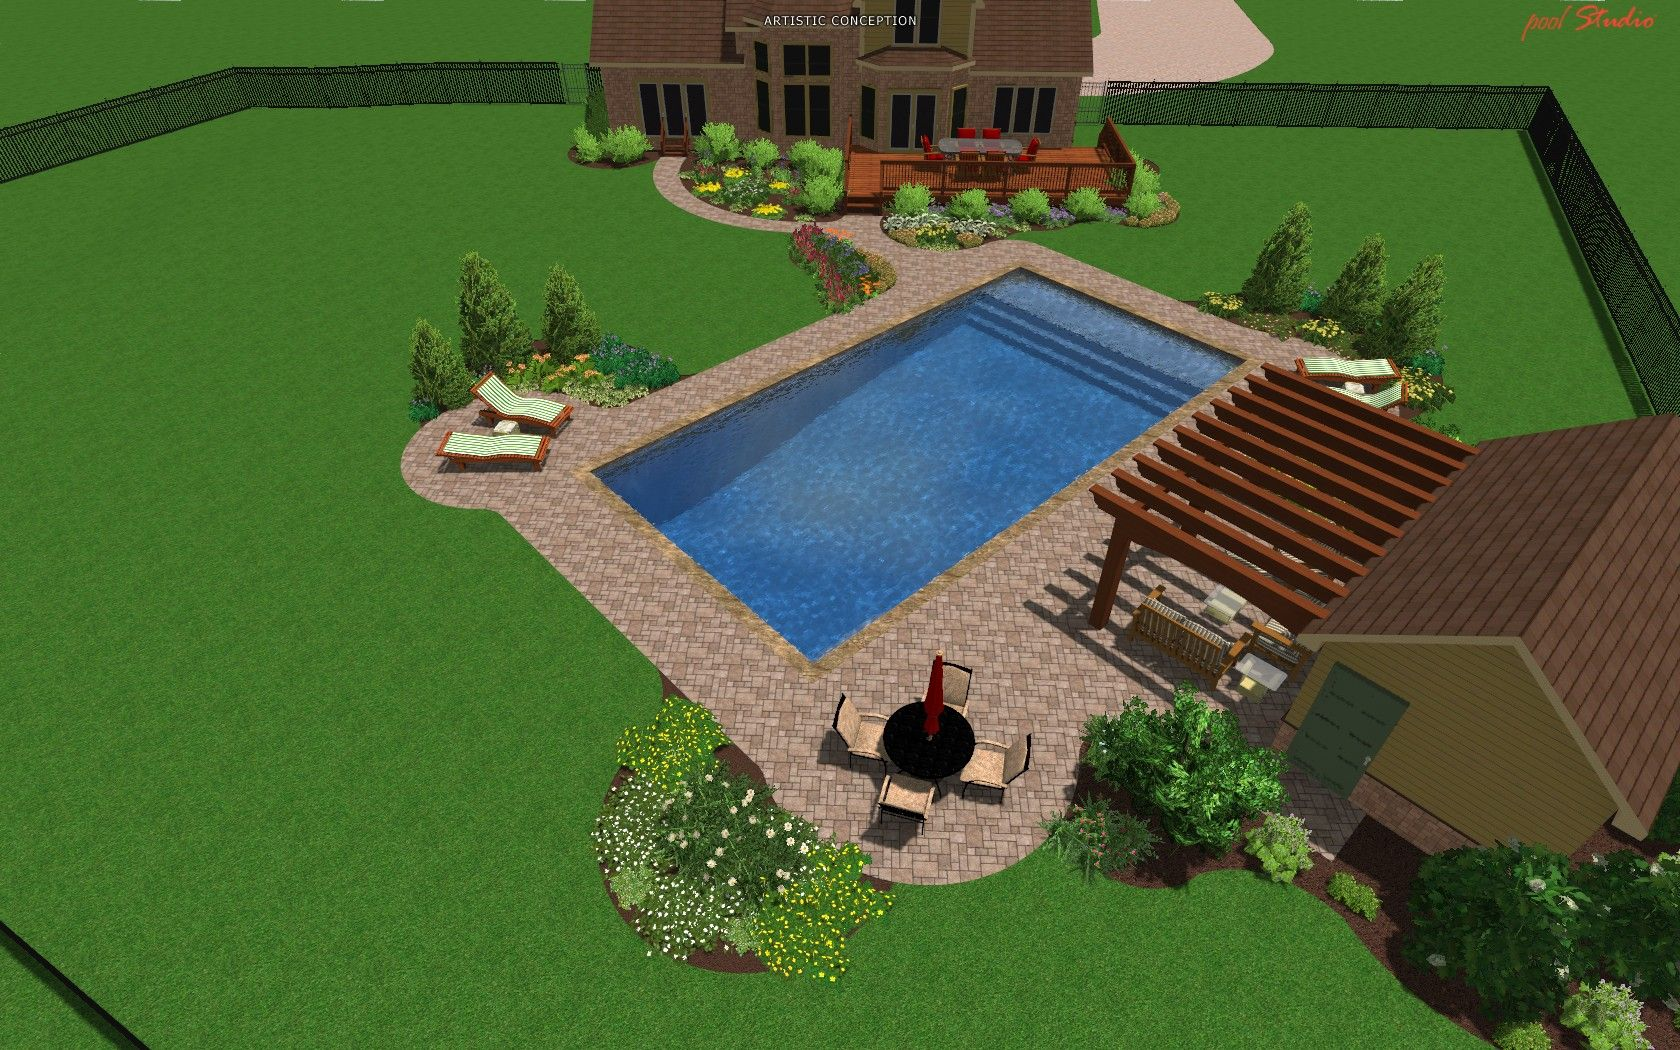 Pool landscaping ideas pool landscape design michigan michigan pool designs places to go - Landscape and pool design ...